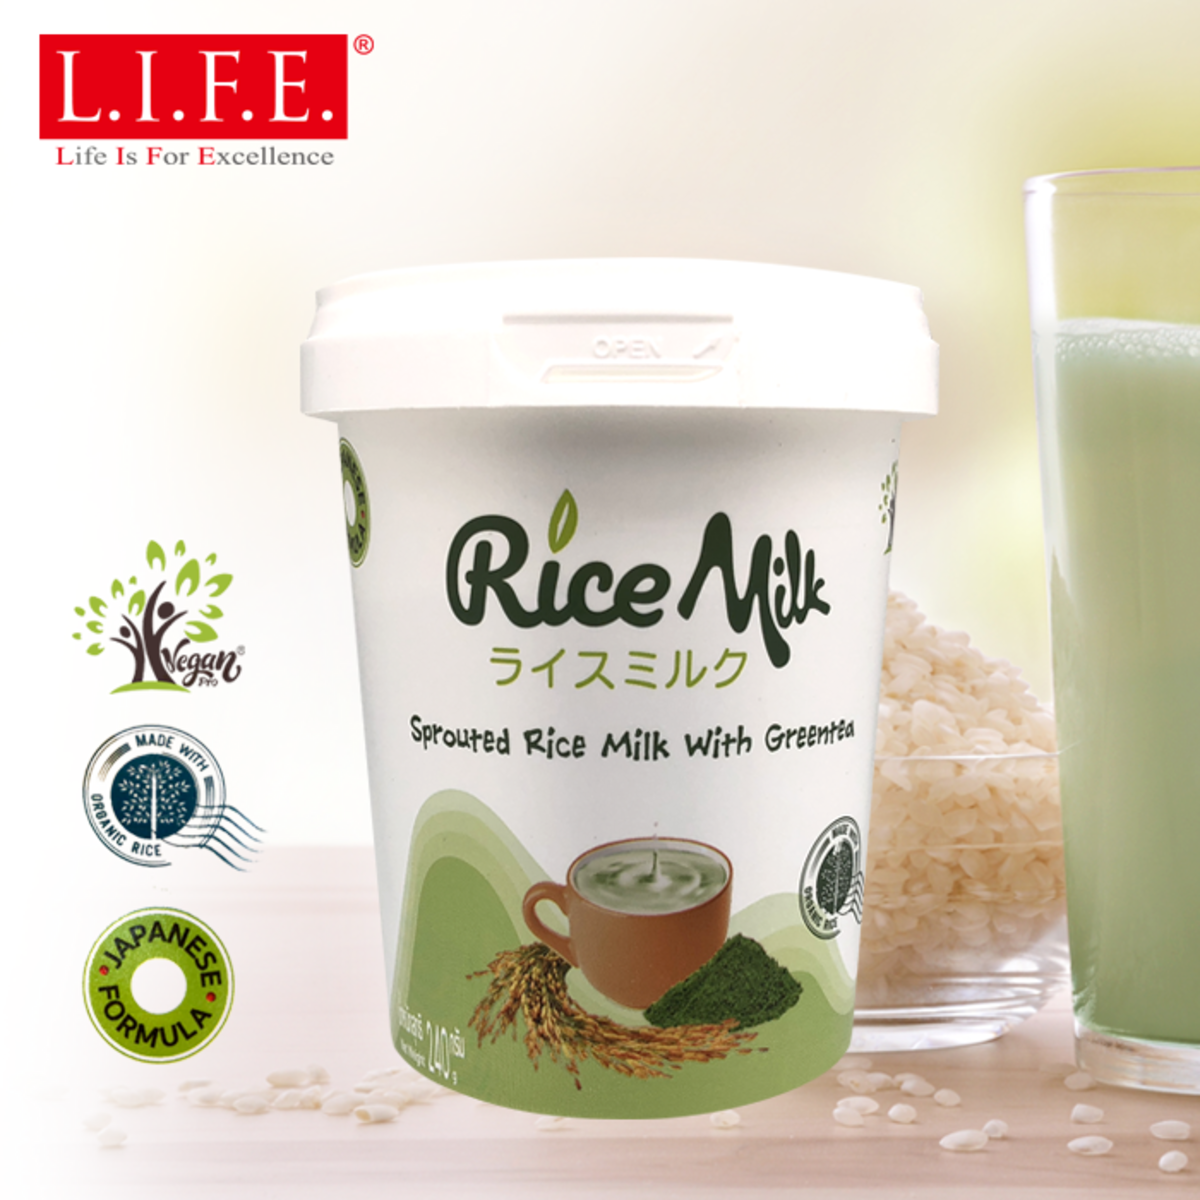 Organic Rice Milk Powder (Sprouted Brown Rice milk with Green Tea) 240g